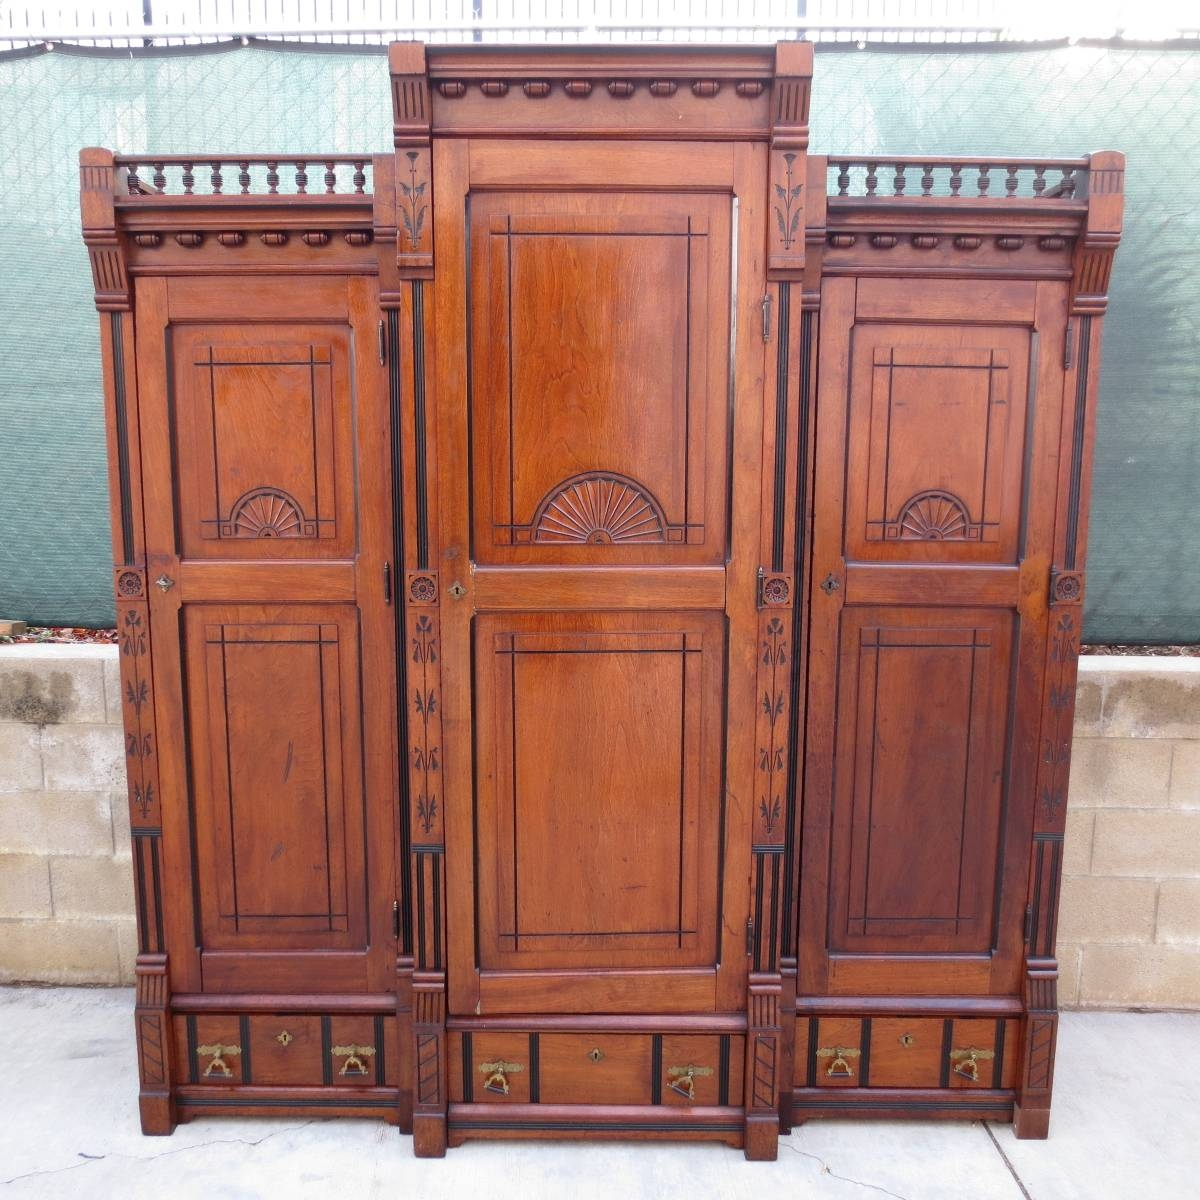 Antique Armoires, Antique Wardrobes, And Antique Furniture From inside Victorian Wardrobes for Sale (Image 2 of 15)